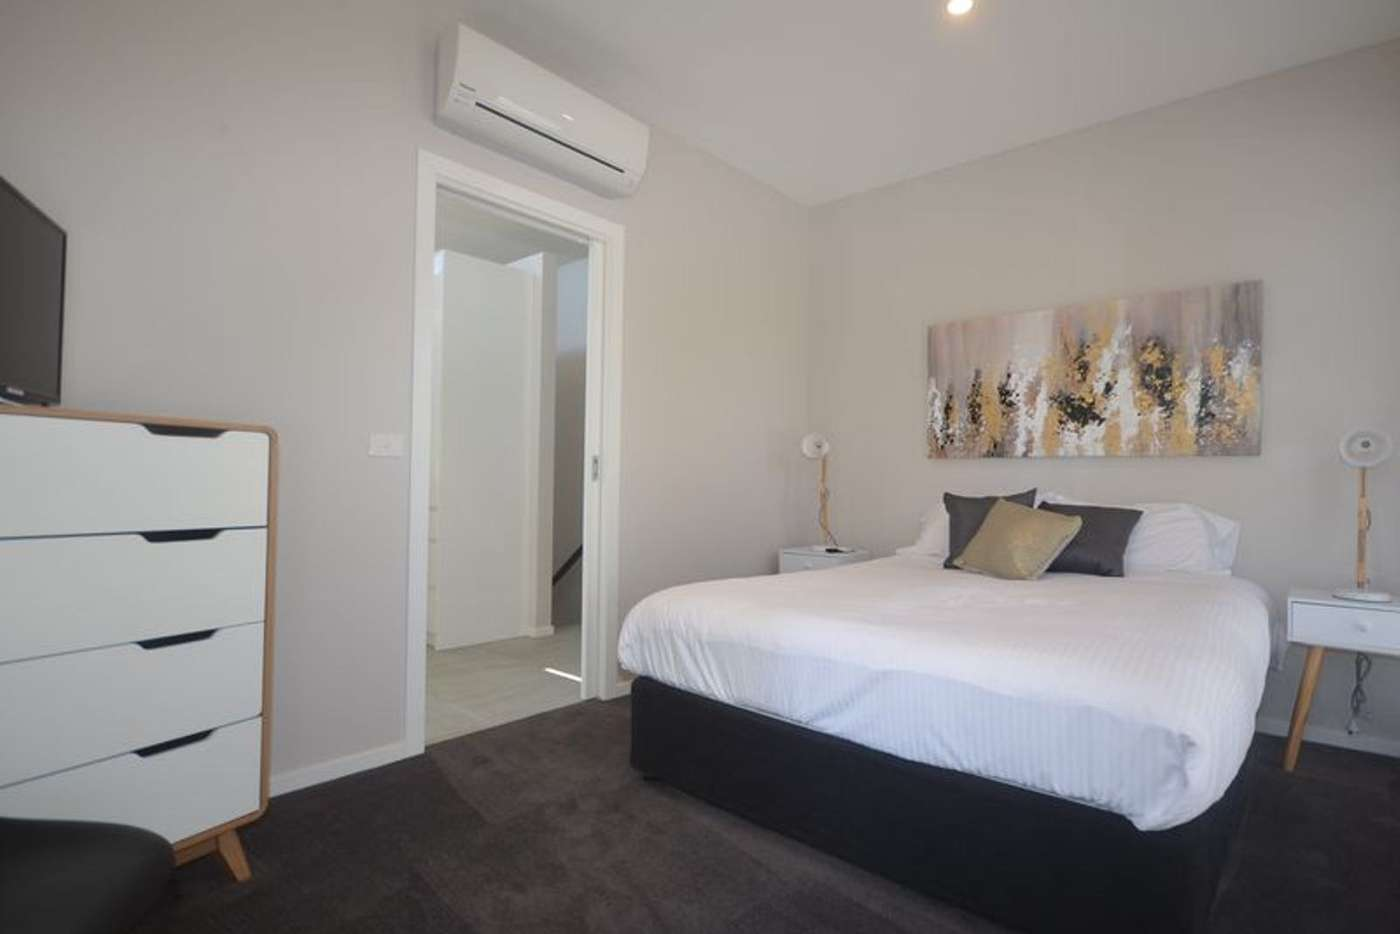 Seventh view of Homely house listing, 1/232 View Street, Bendigo VIC 3550